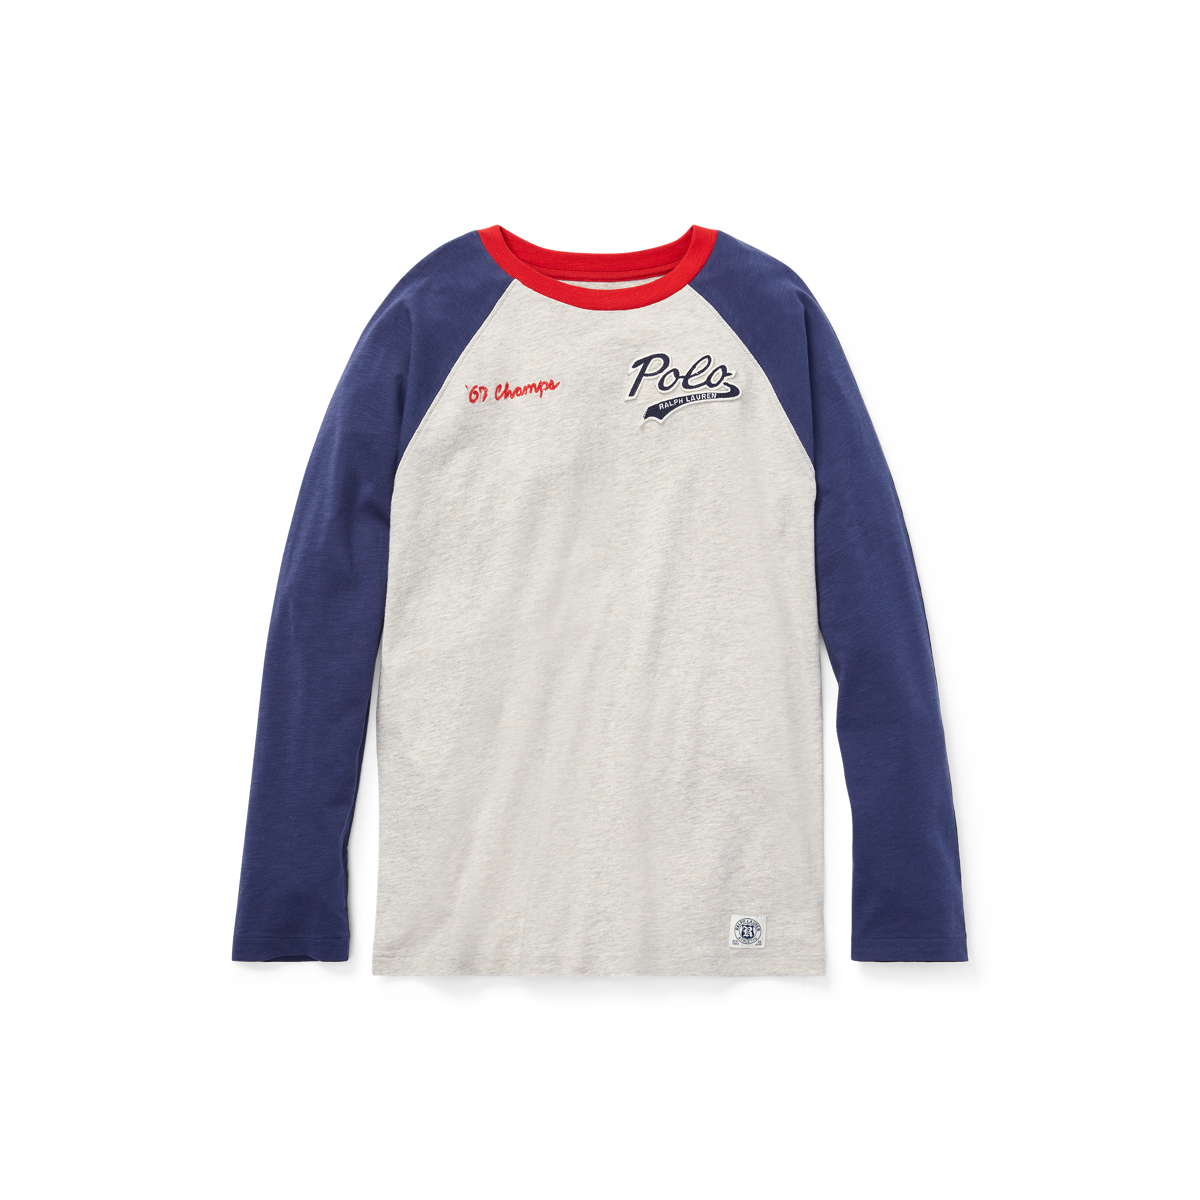 ShirtRalph Jersey Fr Baseball T Lauren Cotton DYe9b2HWEI